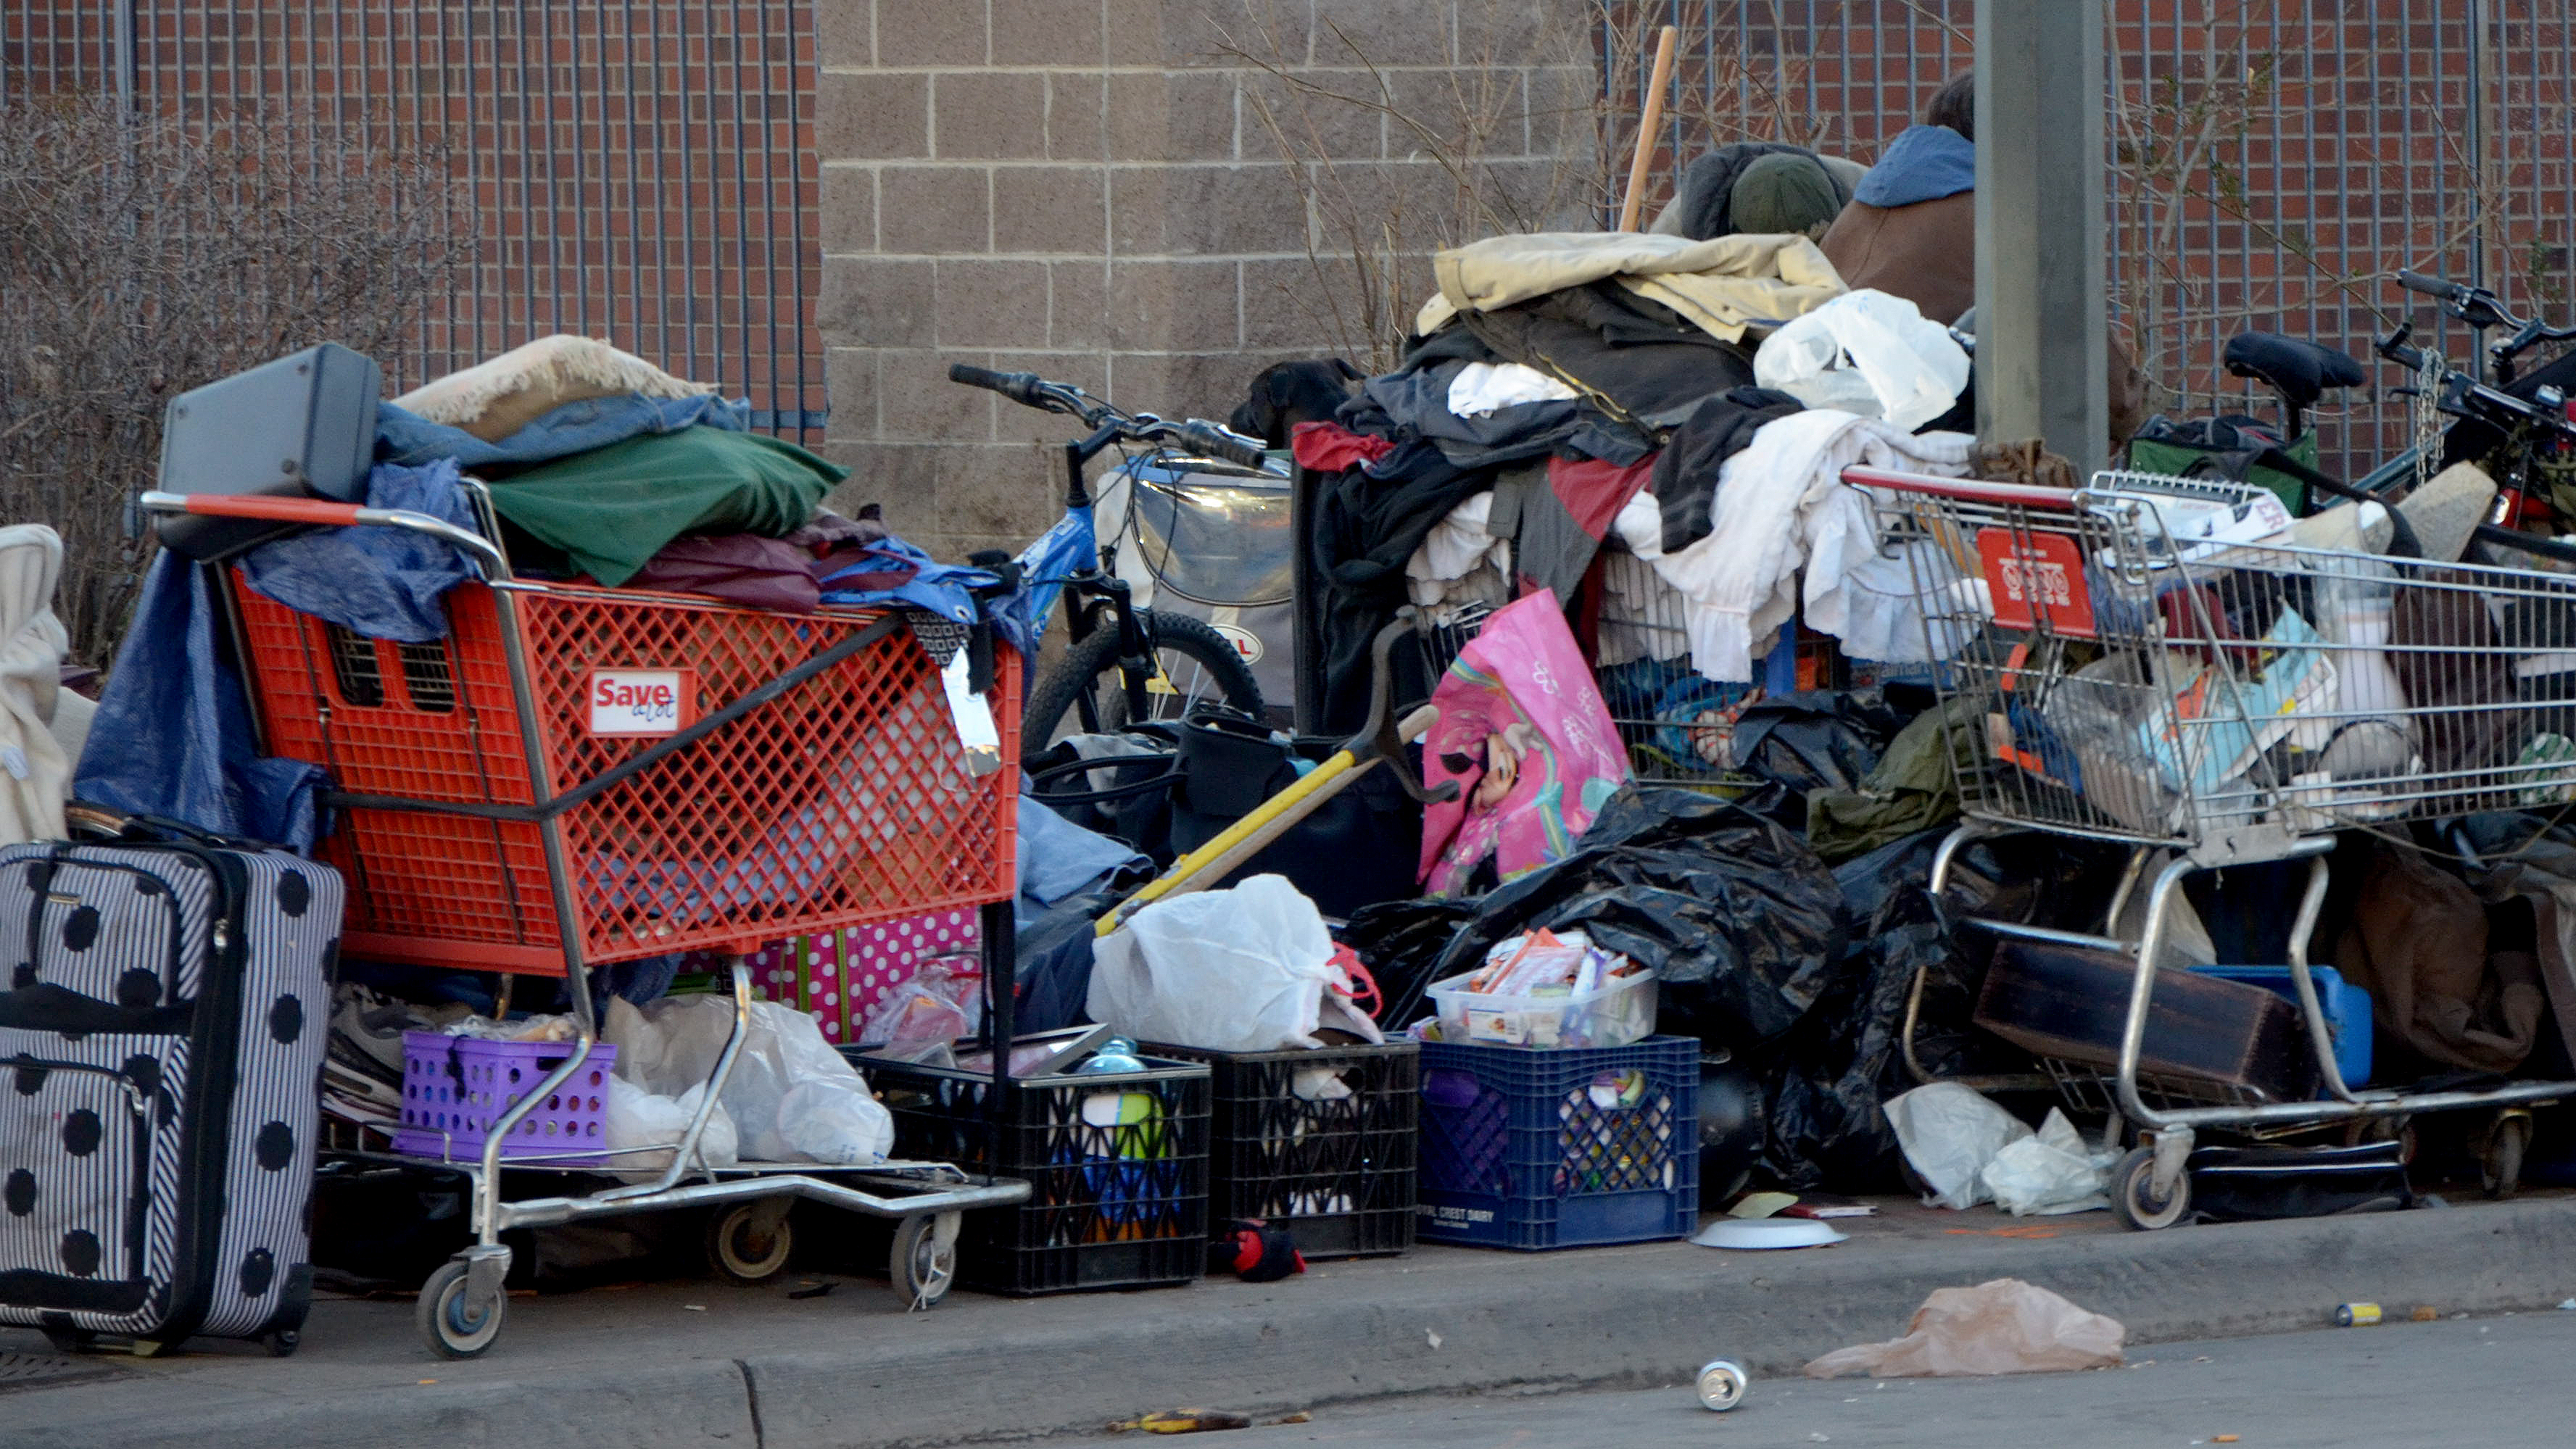 Photo: Homeless, Denver, Piles Of Belongings Outside Catholic Charities